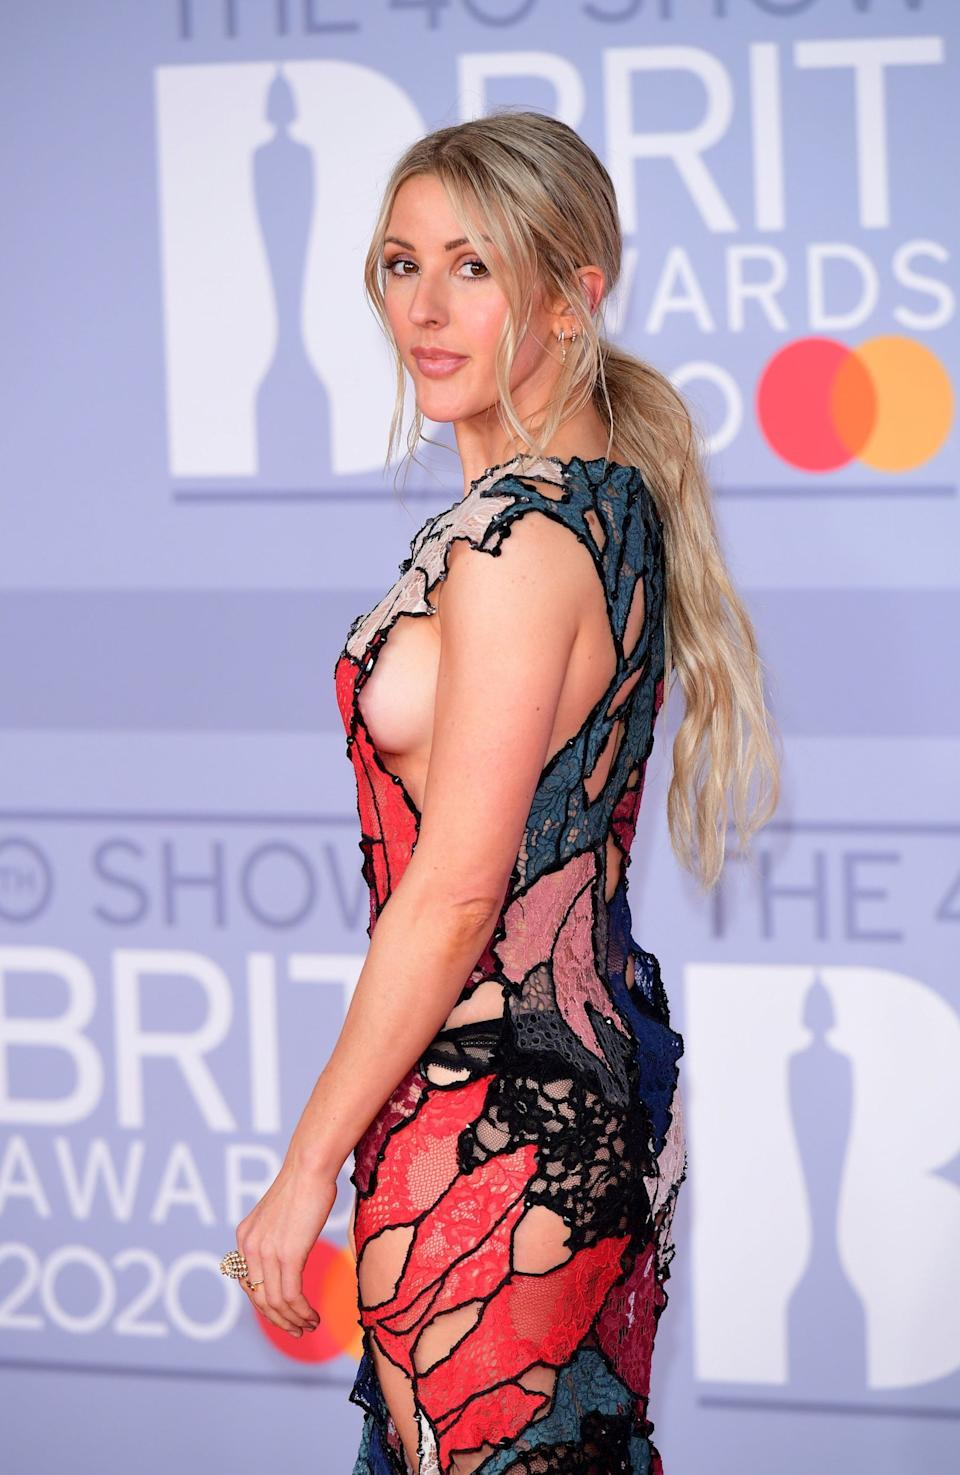 Goulding said she would skip recording to exercise (PA)